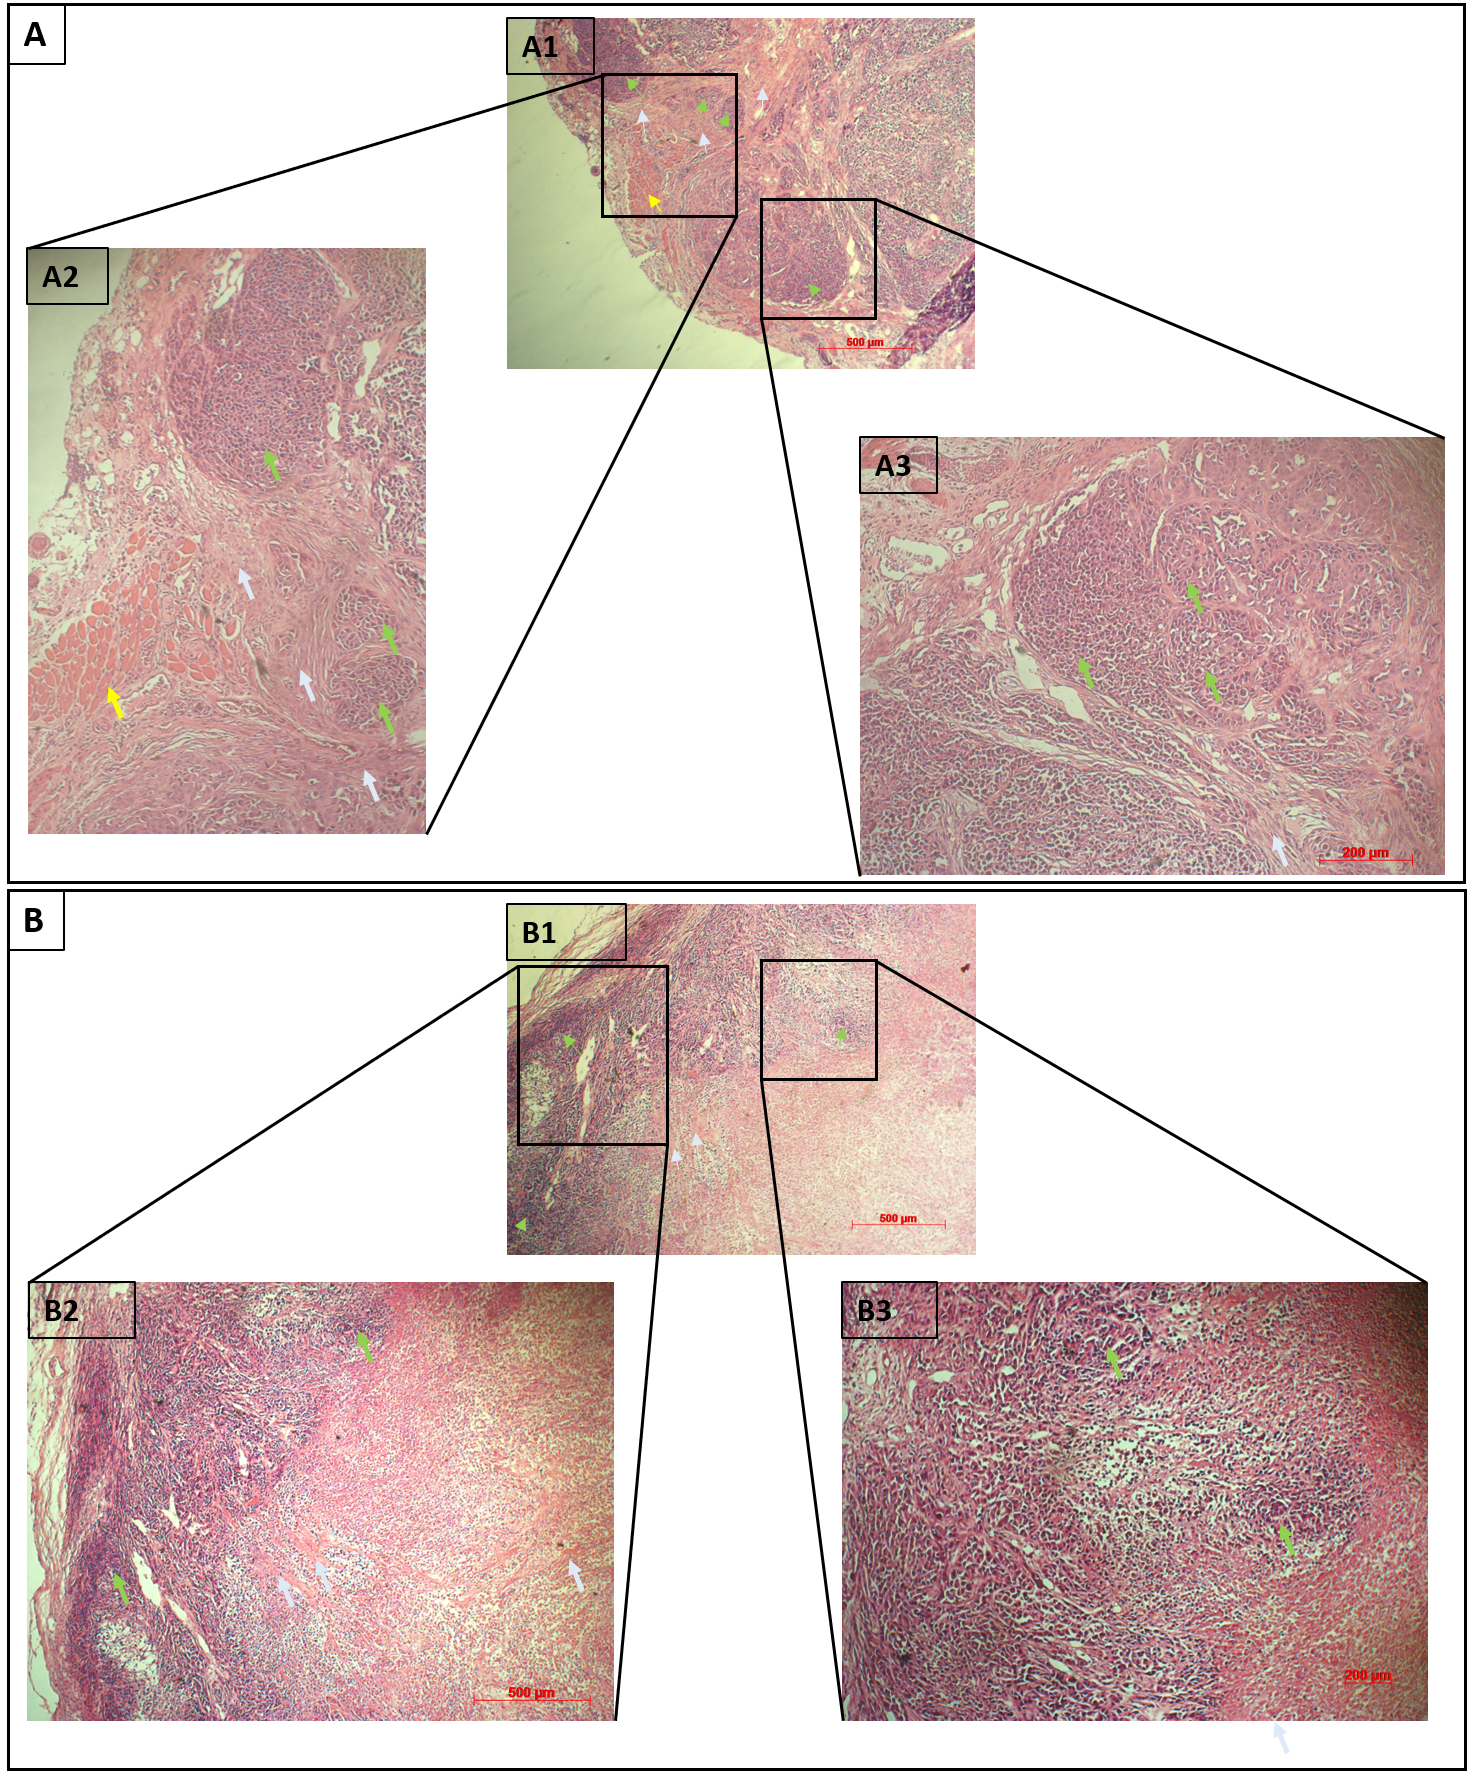 Figure 5  ); green arrows indicate evidence of cancer cell clumps, yellow arrows identify the areas of muscle tissue, gray arrows expose the fibrosis tissues.